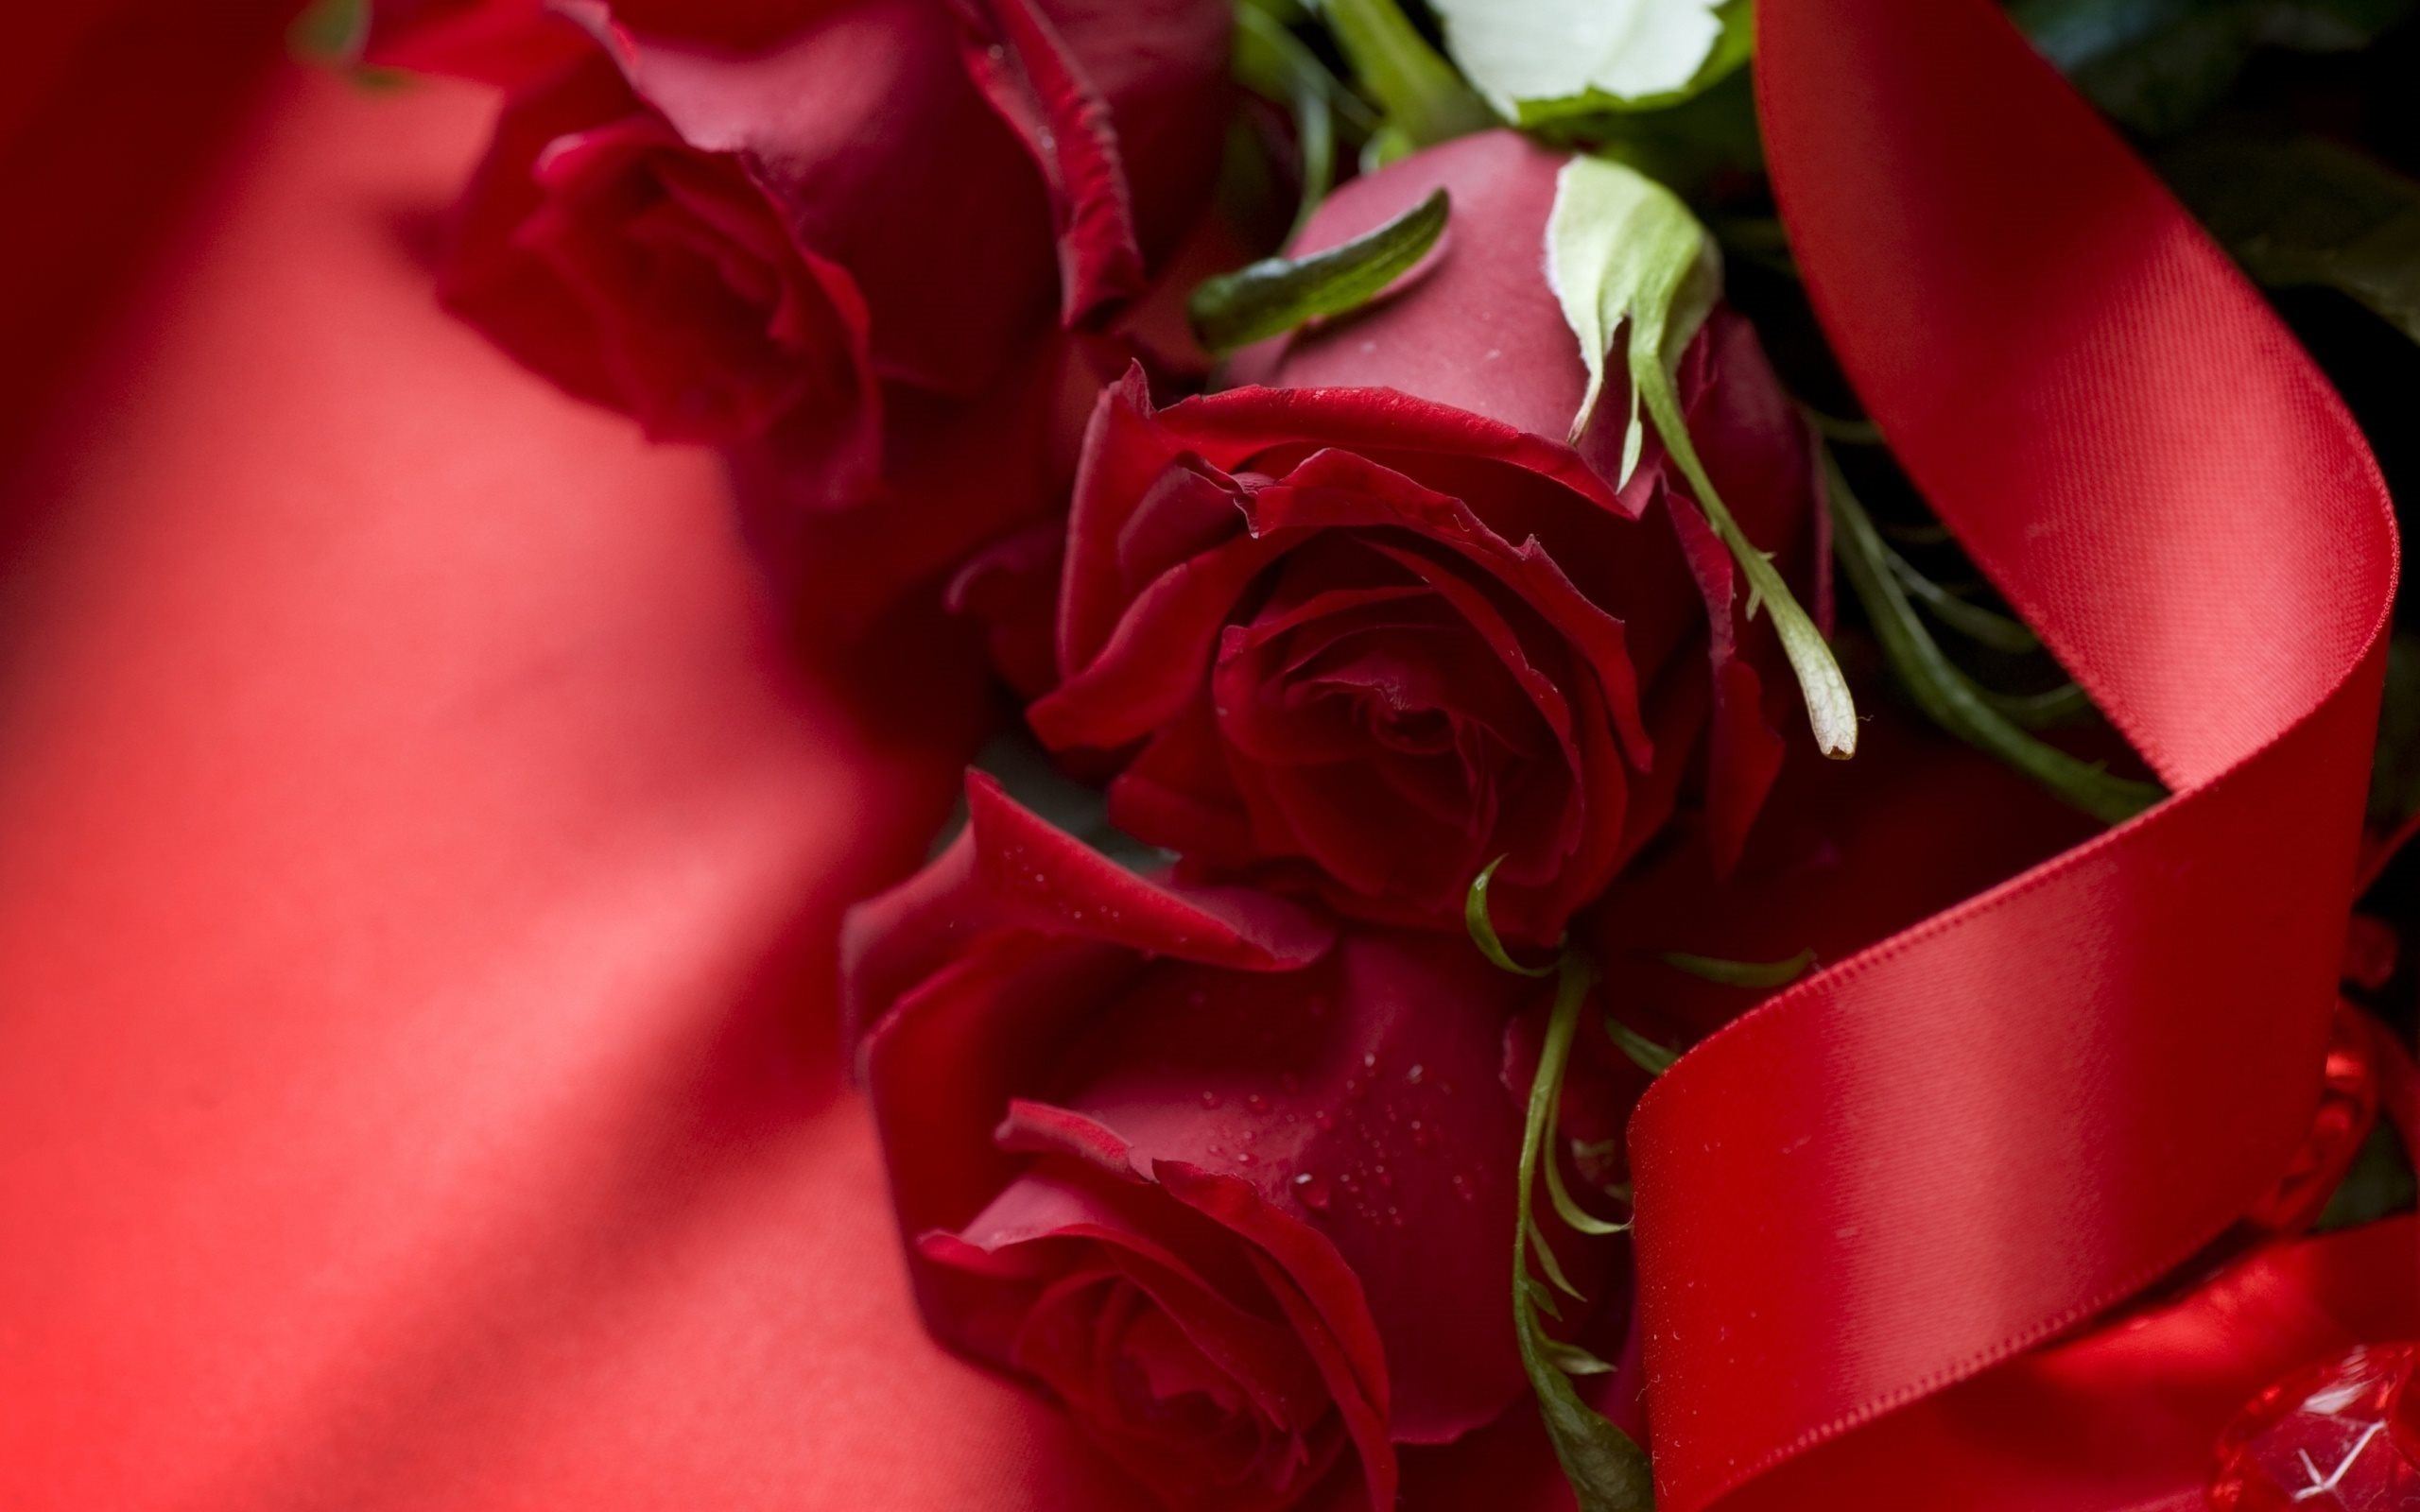 Download Wallpapers Romantic Background, Red Roses, - Rose Beautiful Wallpaper Downloaded , HD Wallpaper & Backgrounds